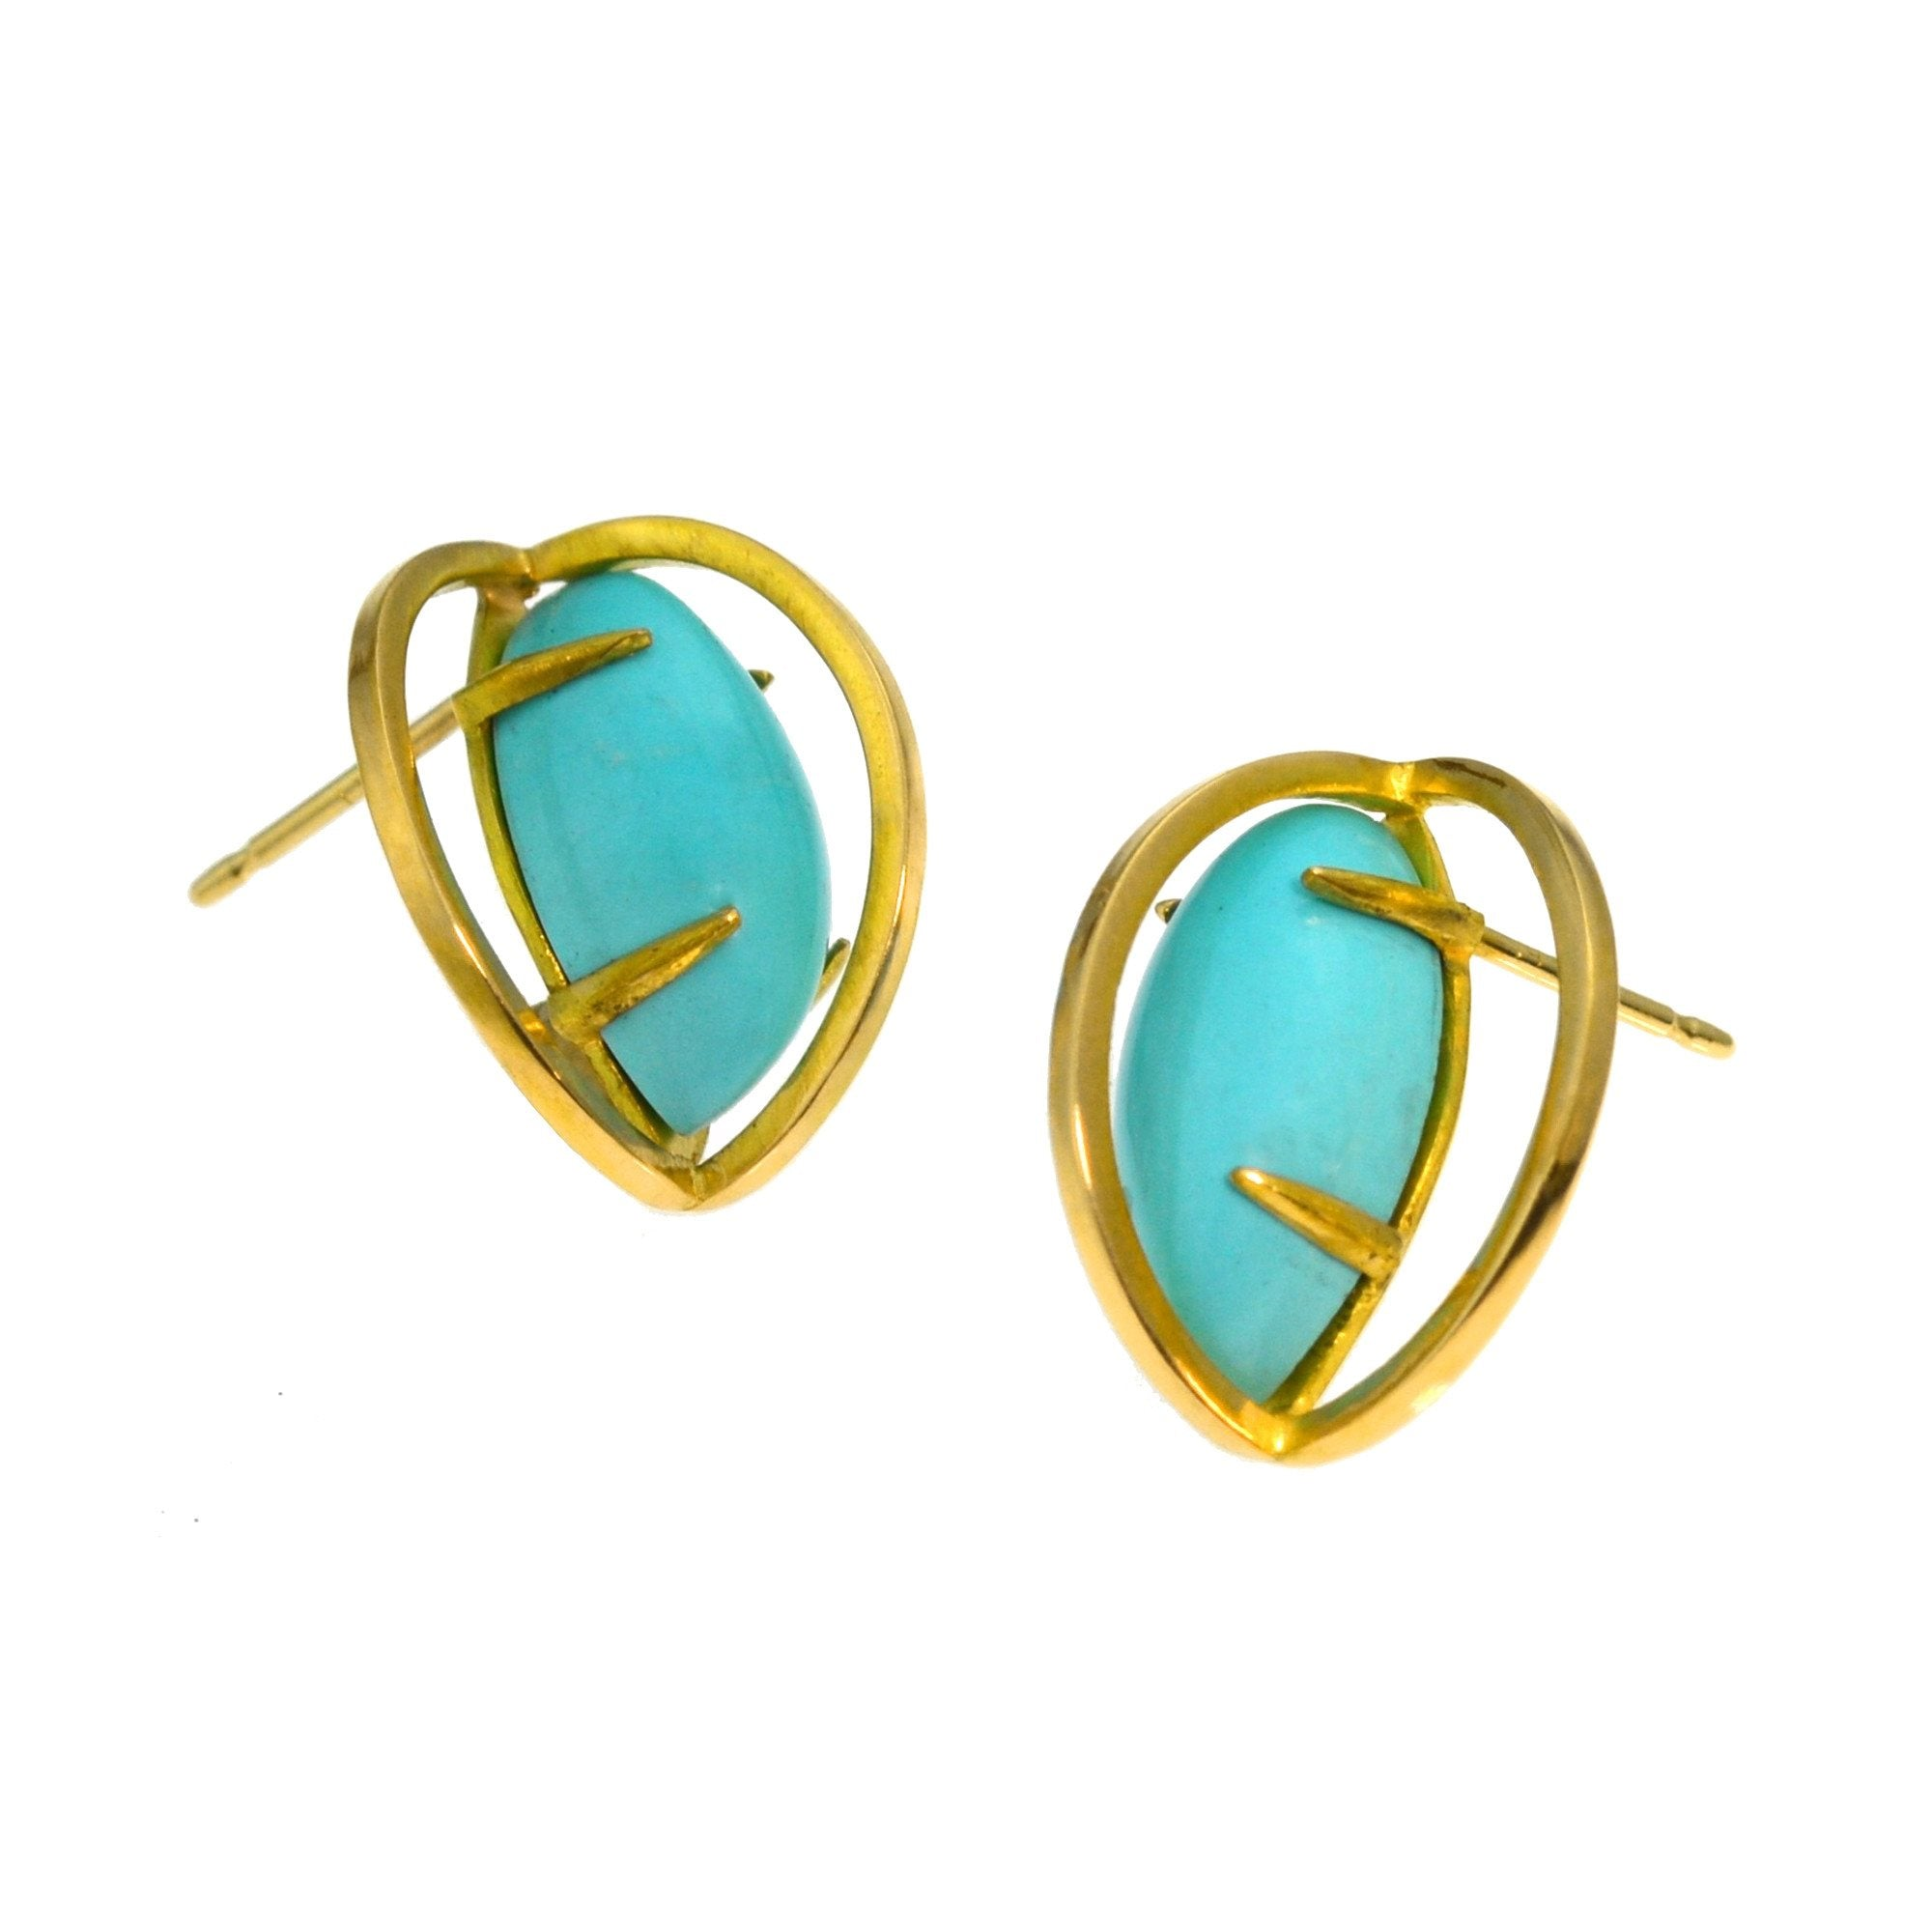 Slip Stream Earring Stud in 18k gold with natural Persian Turquoise